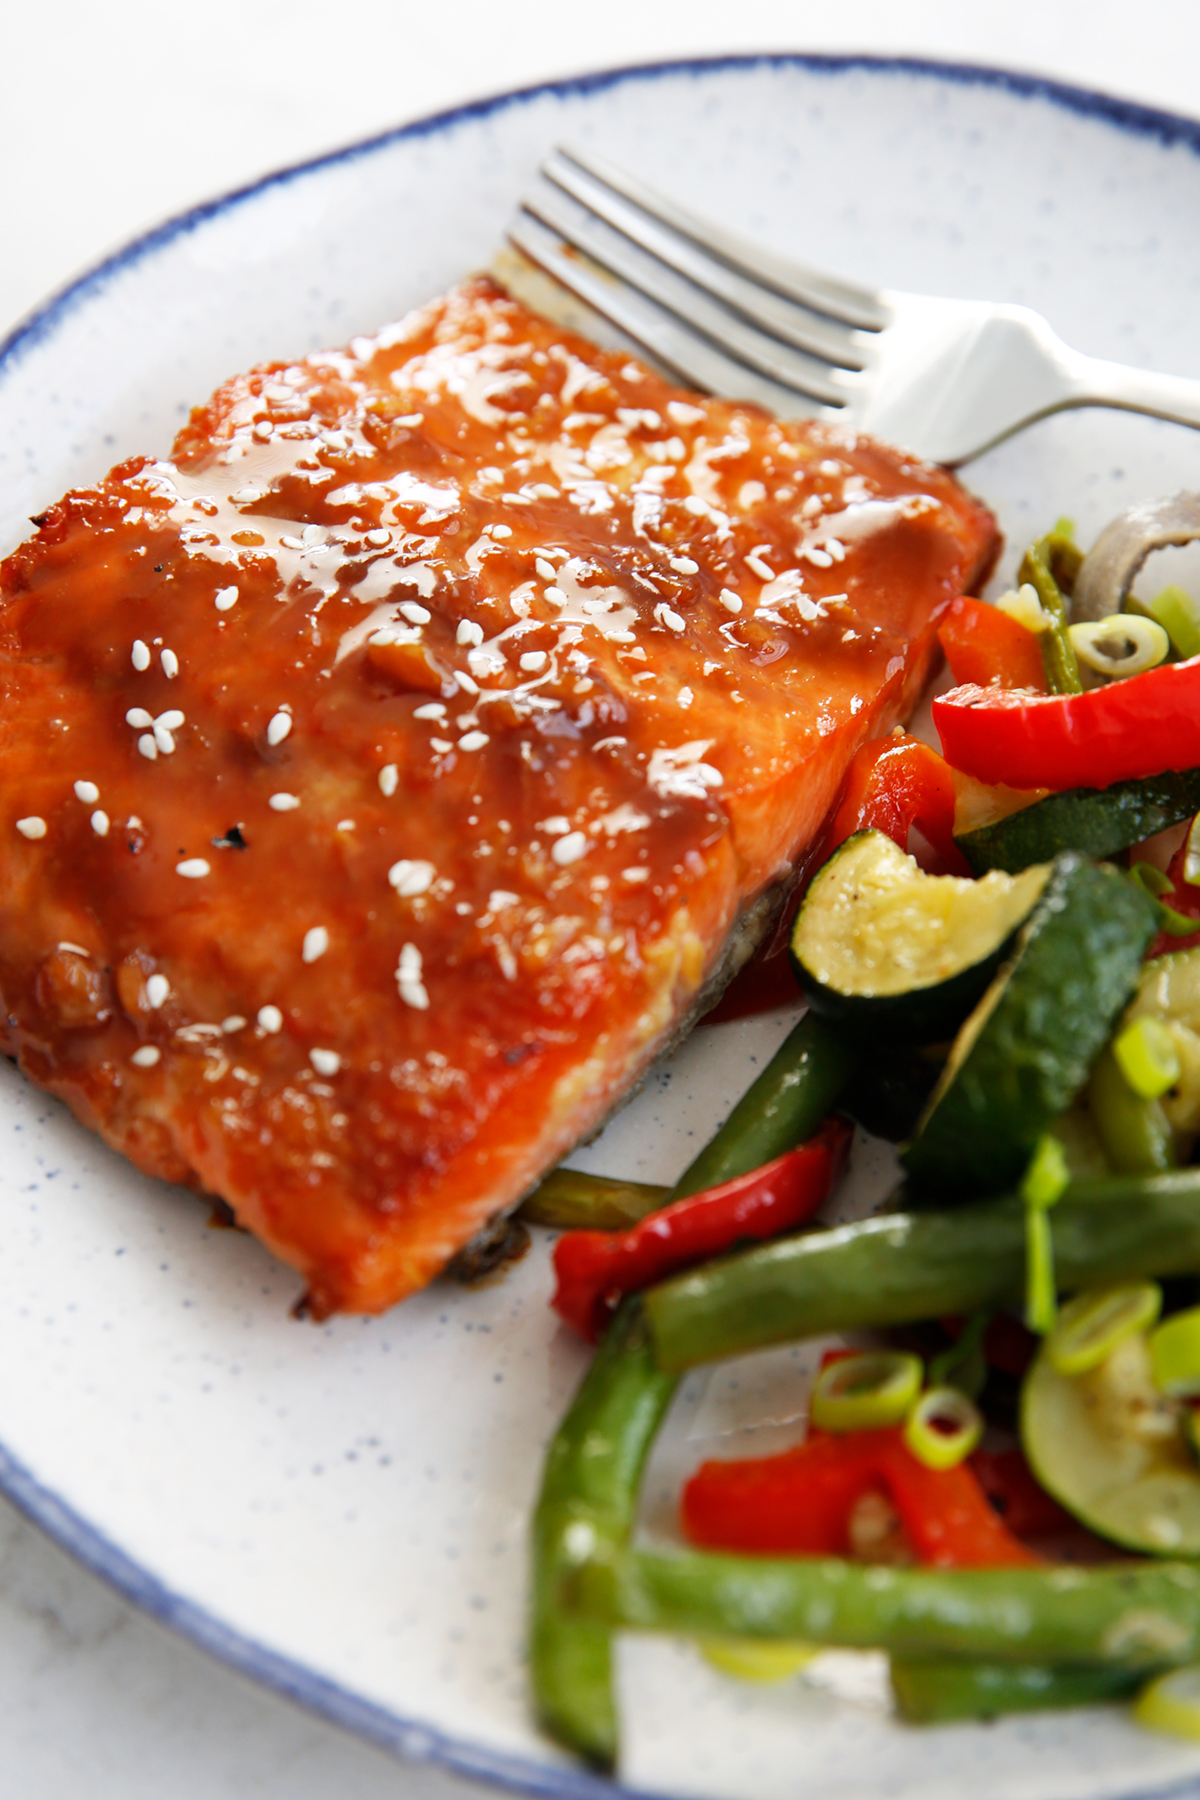 A dish of sticky salmon with vegetables.